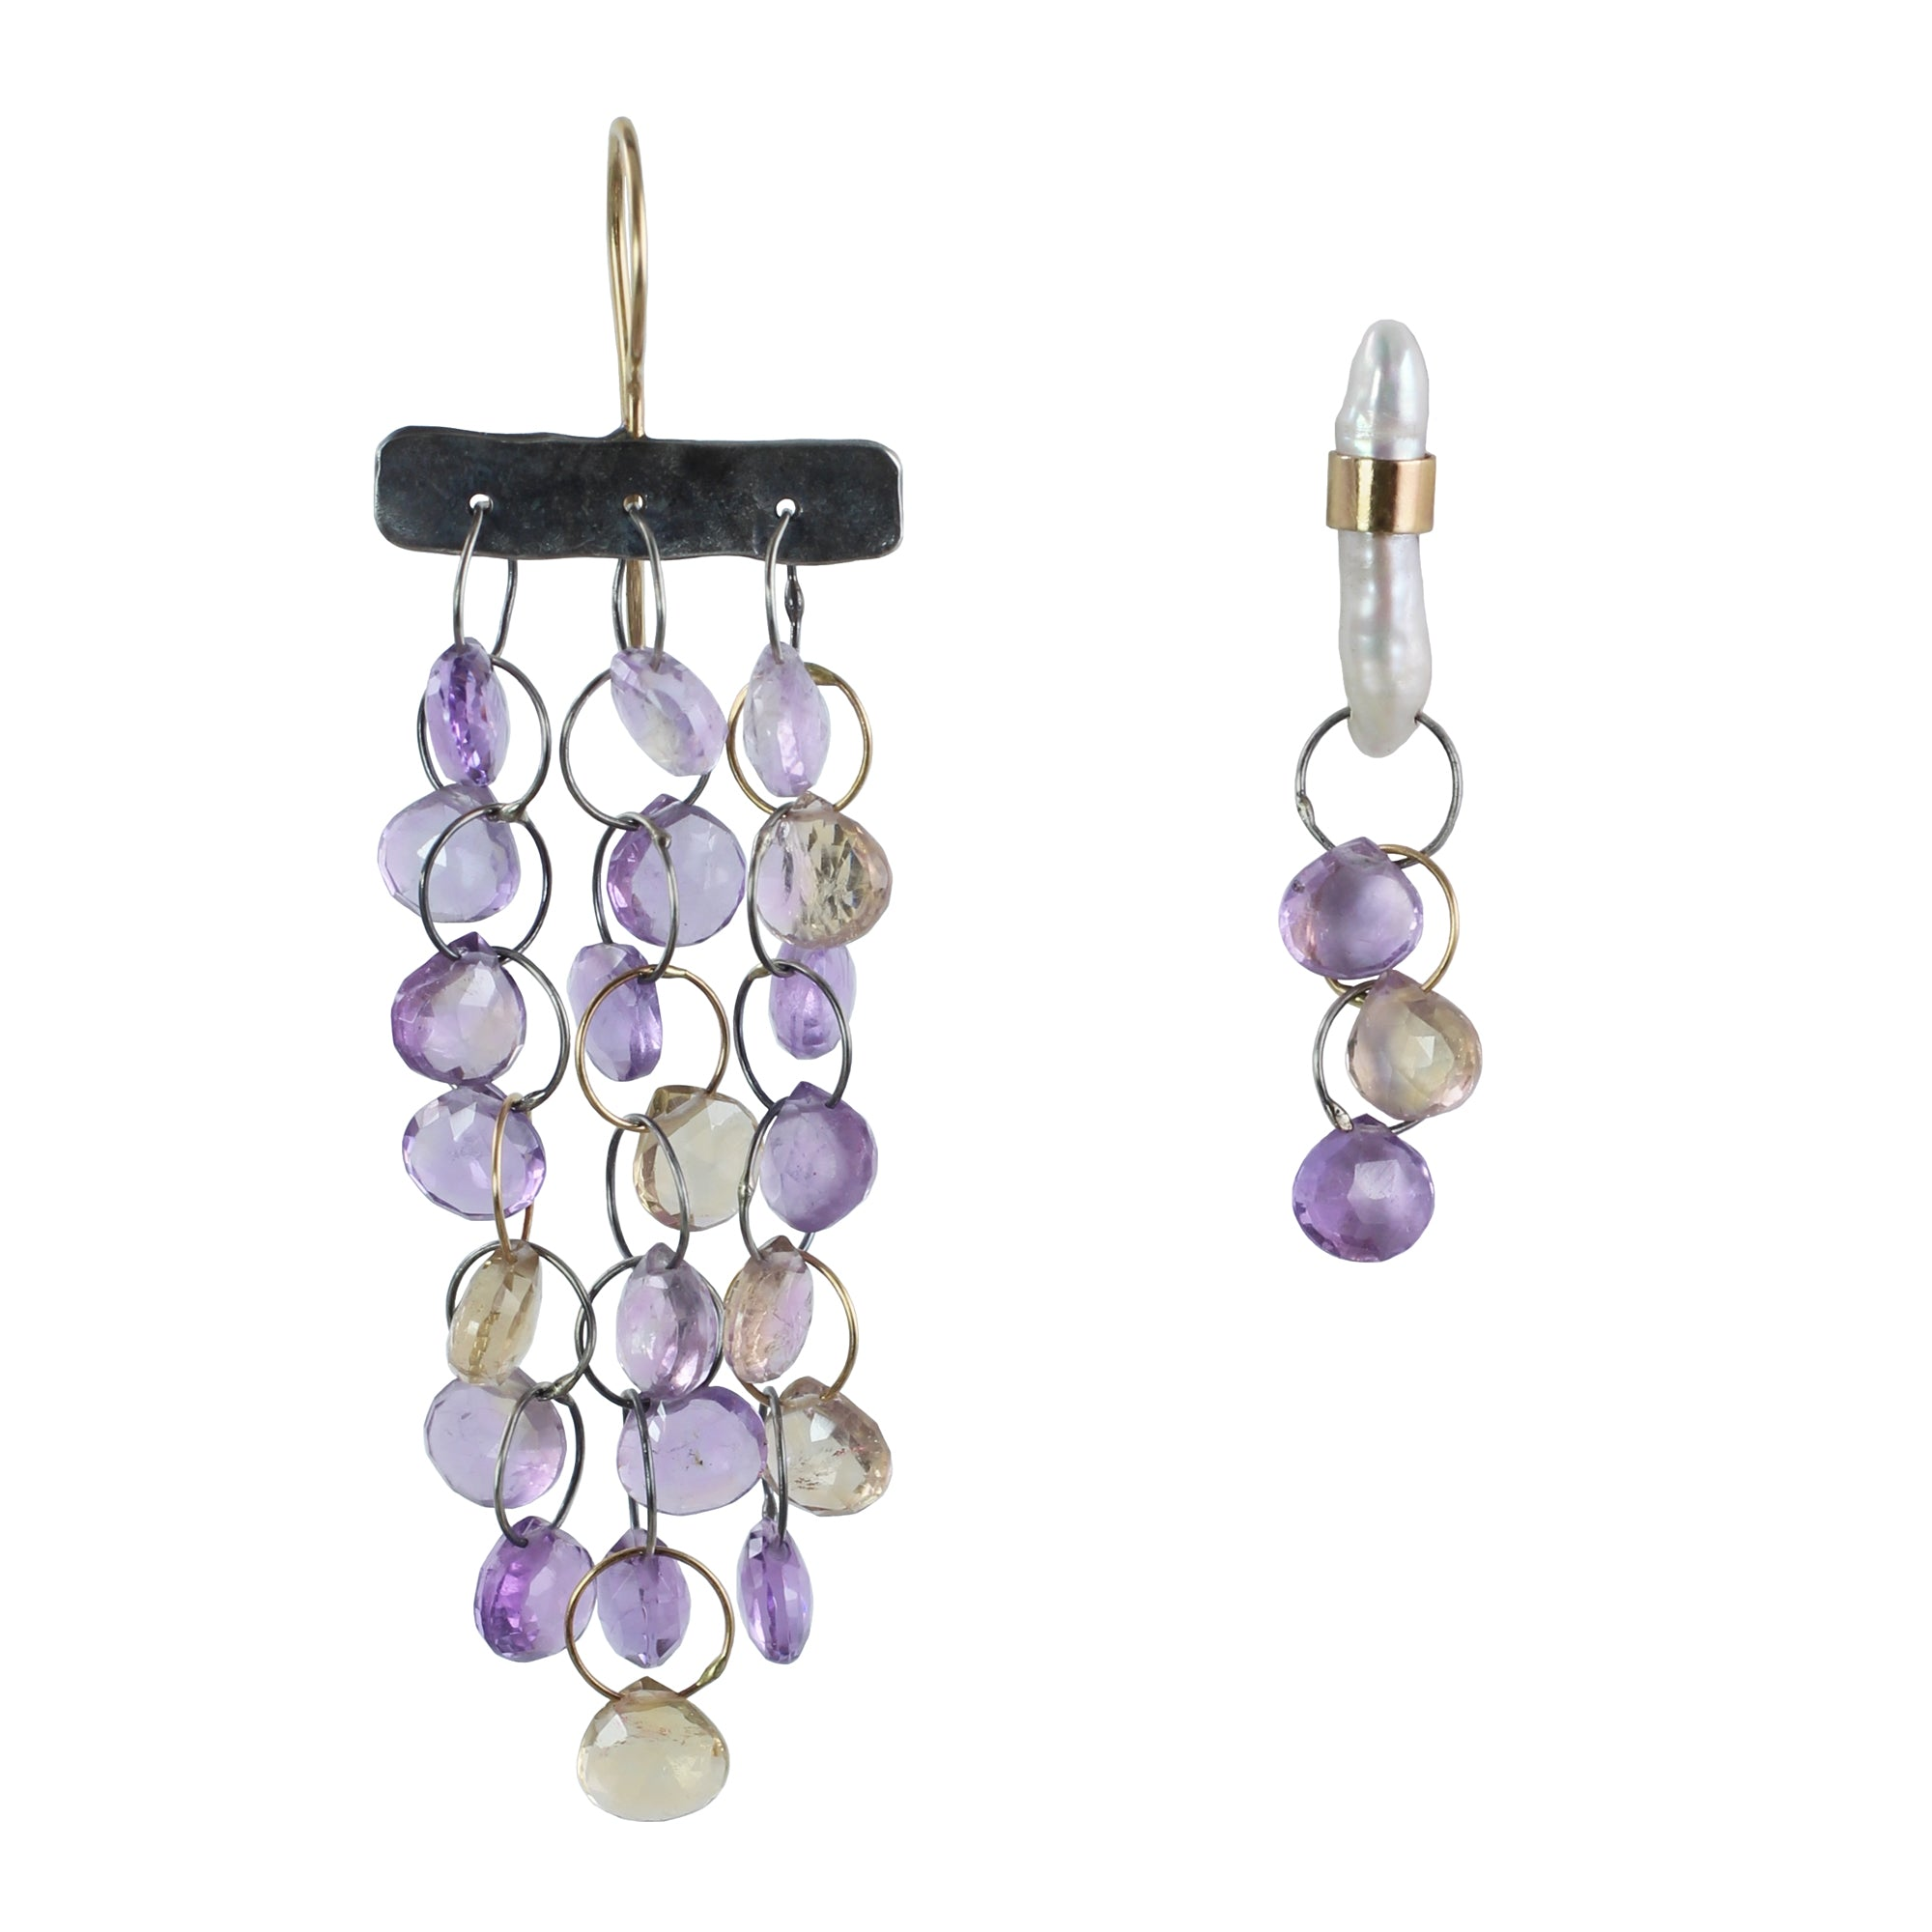 Cascading Ametrine Earrings